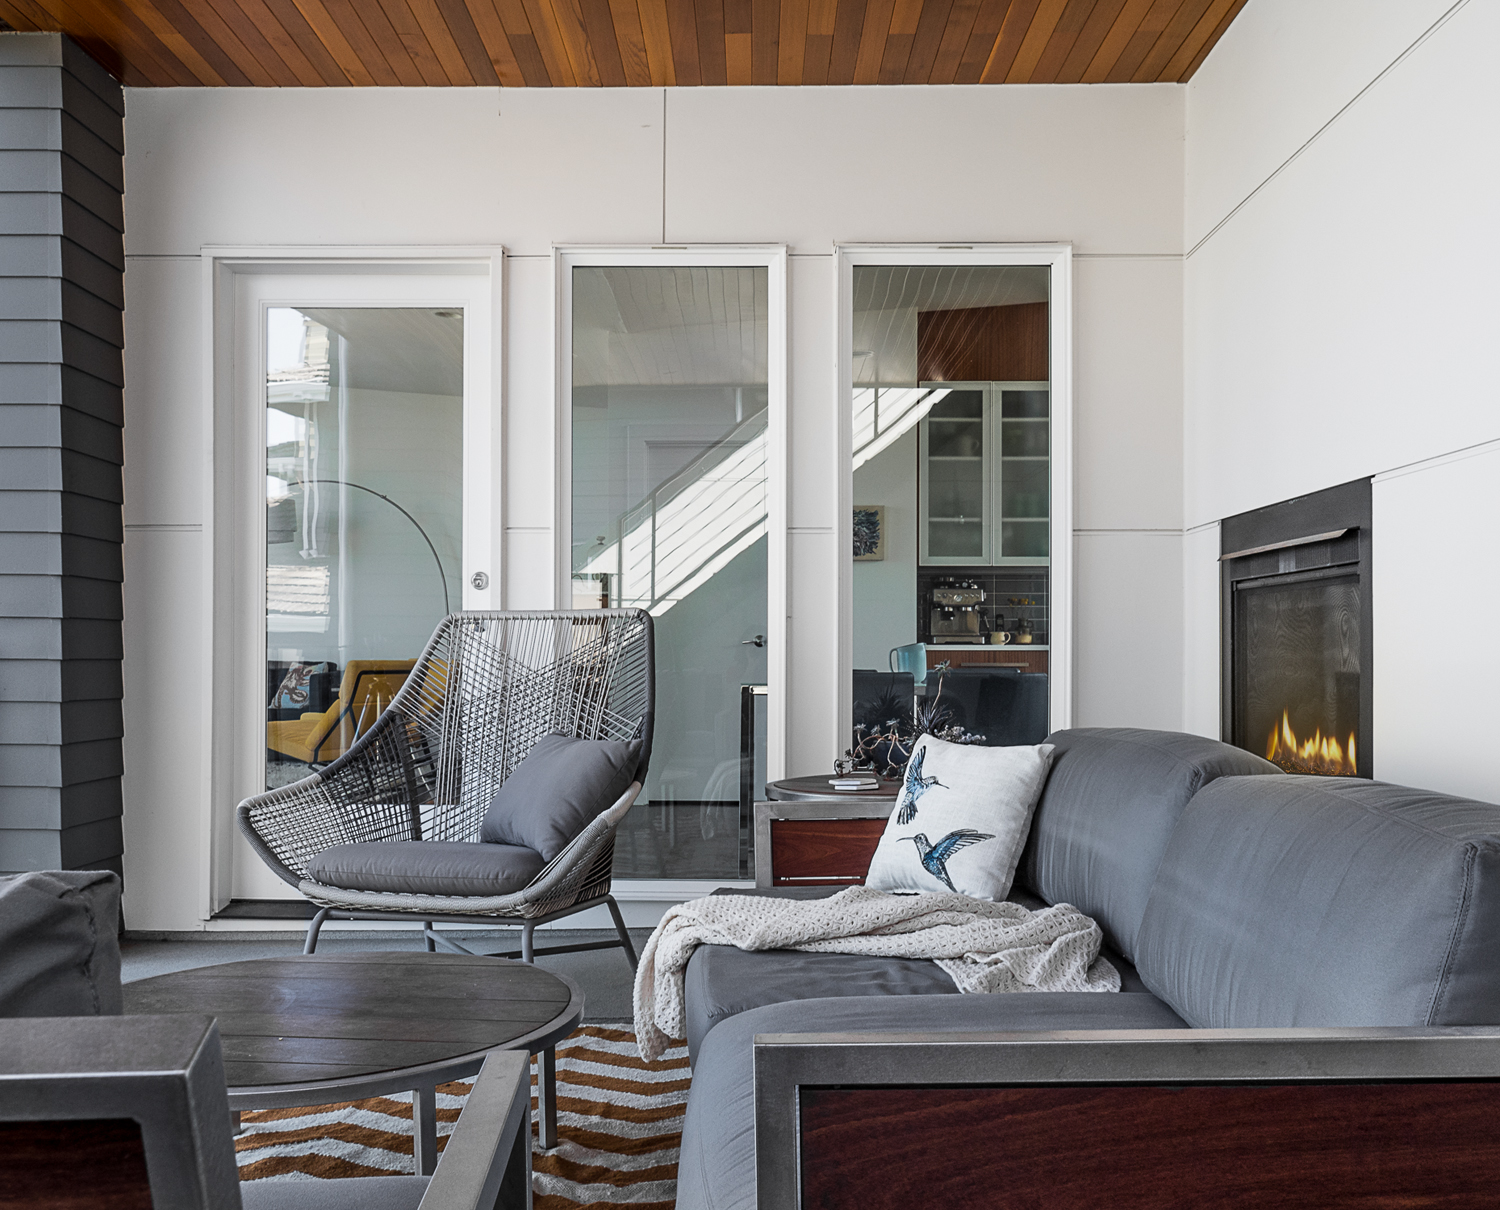 modern cpvered patio with furniture and fireplace